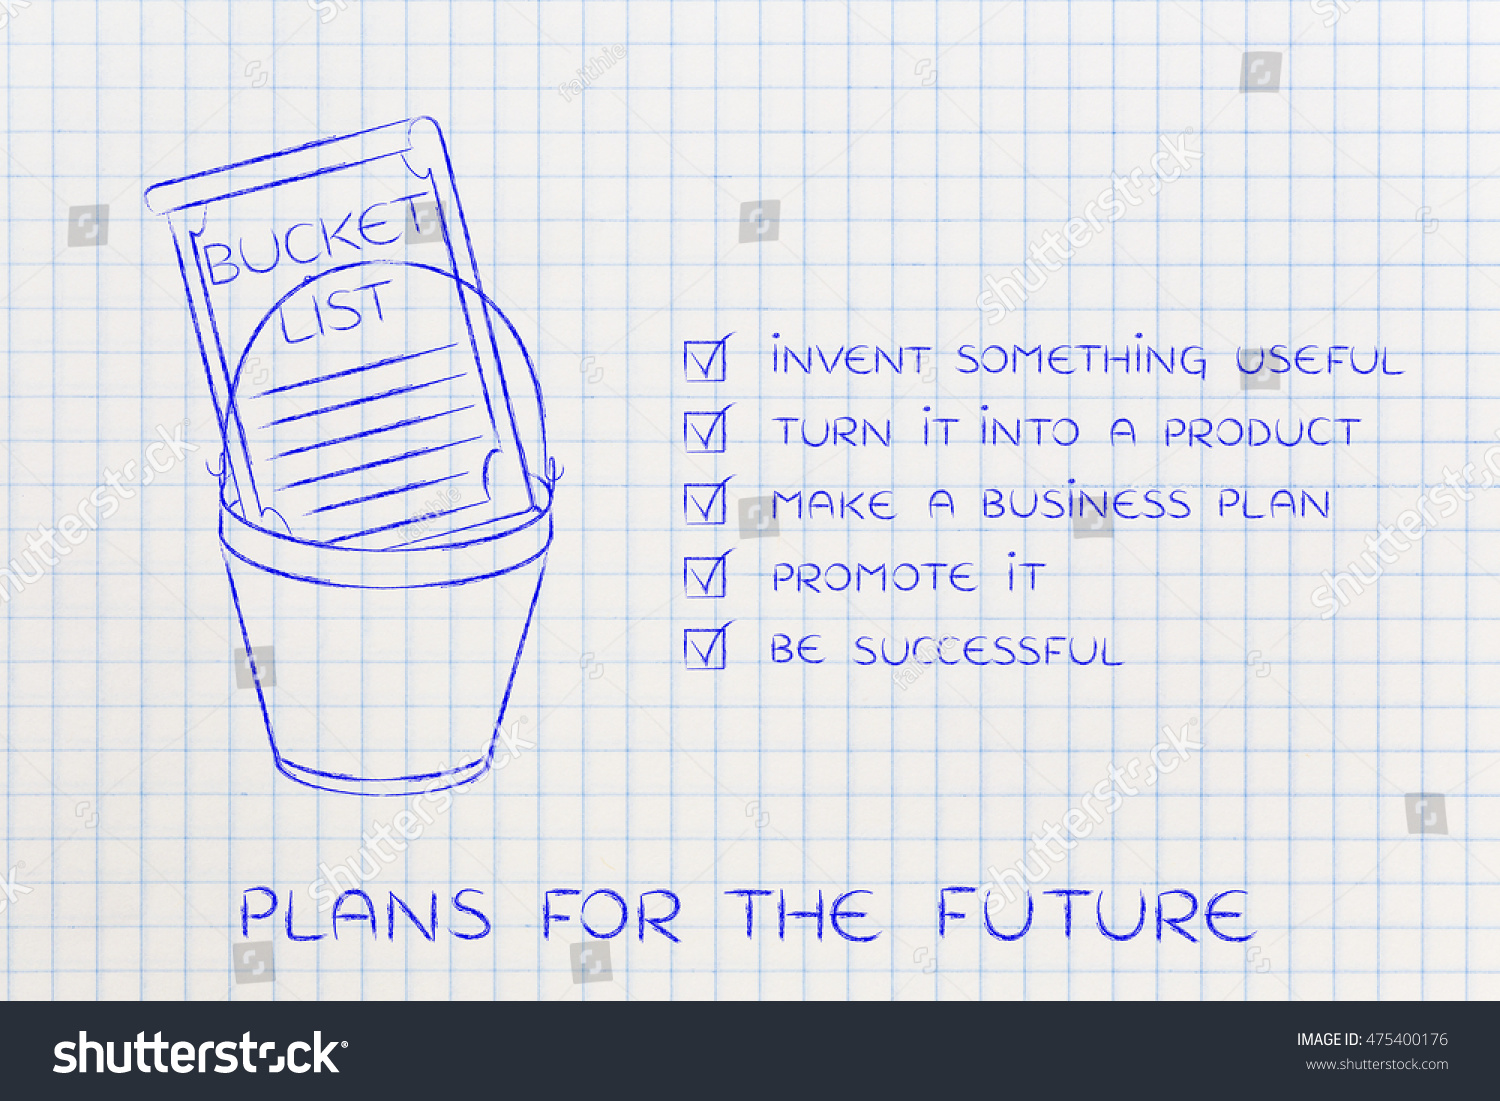 Exceptional Bucket List Of Entrepreneurial Success Dreams: Invent Something Useful To  Turn Into A Profitable Product